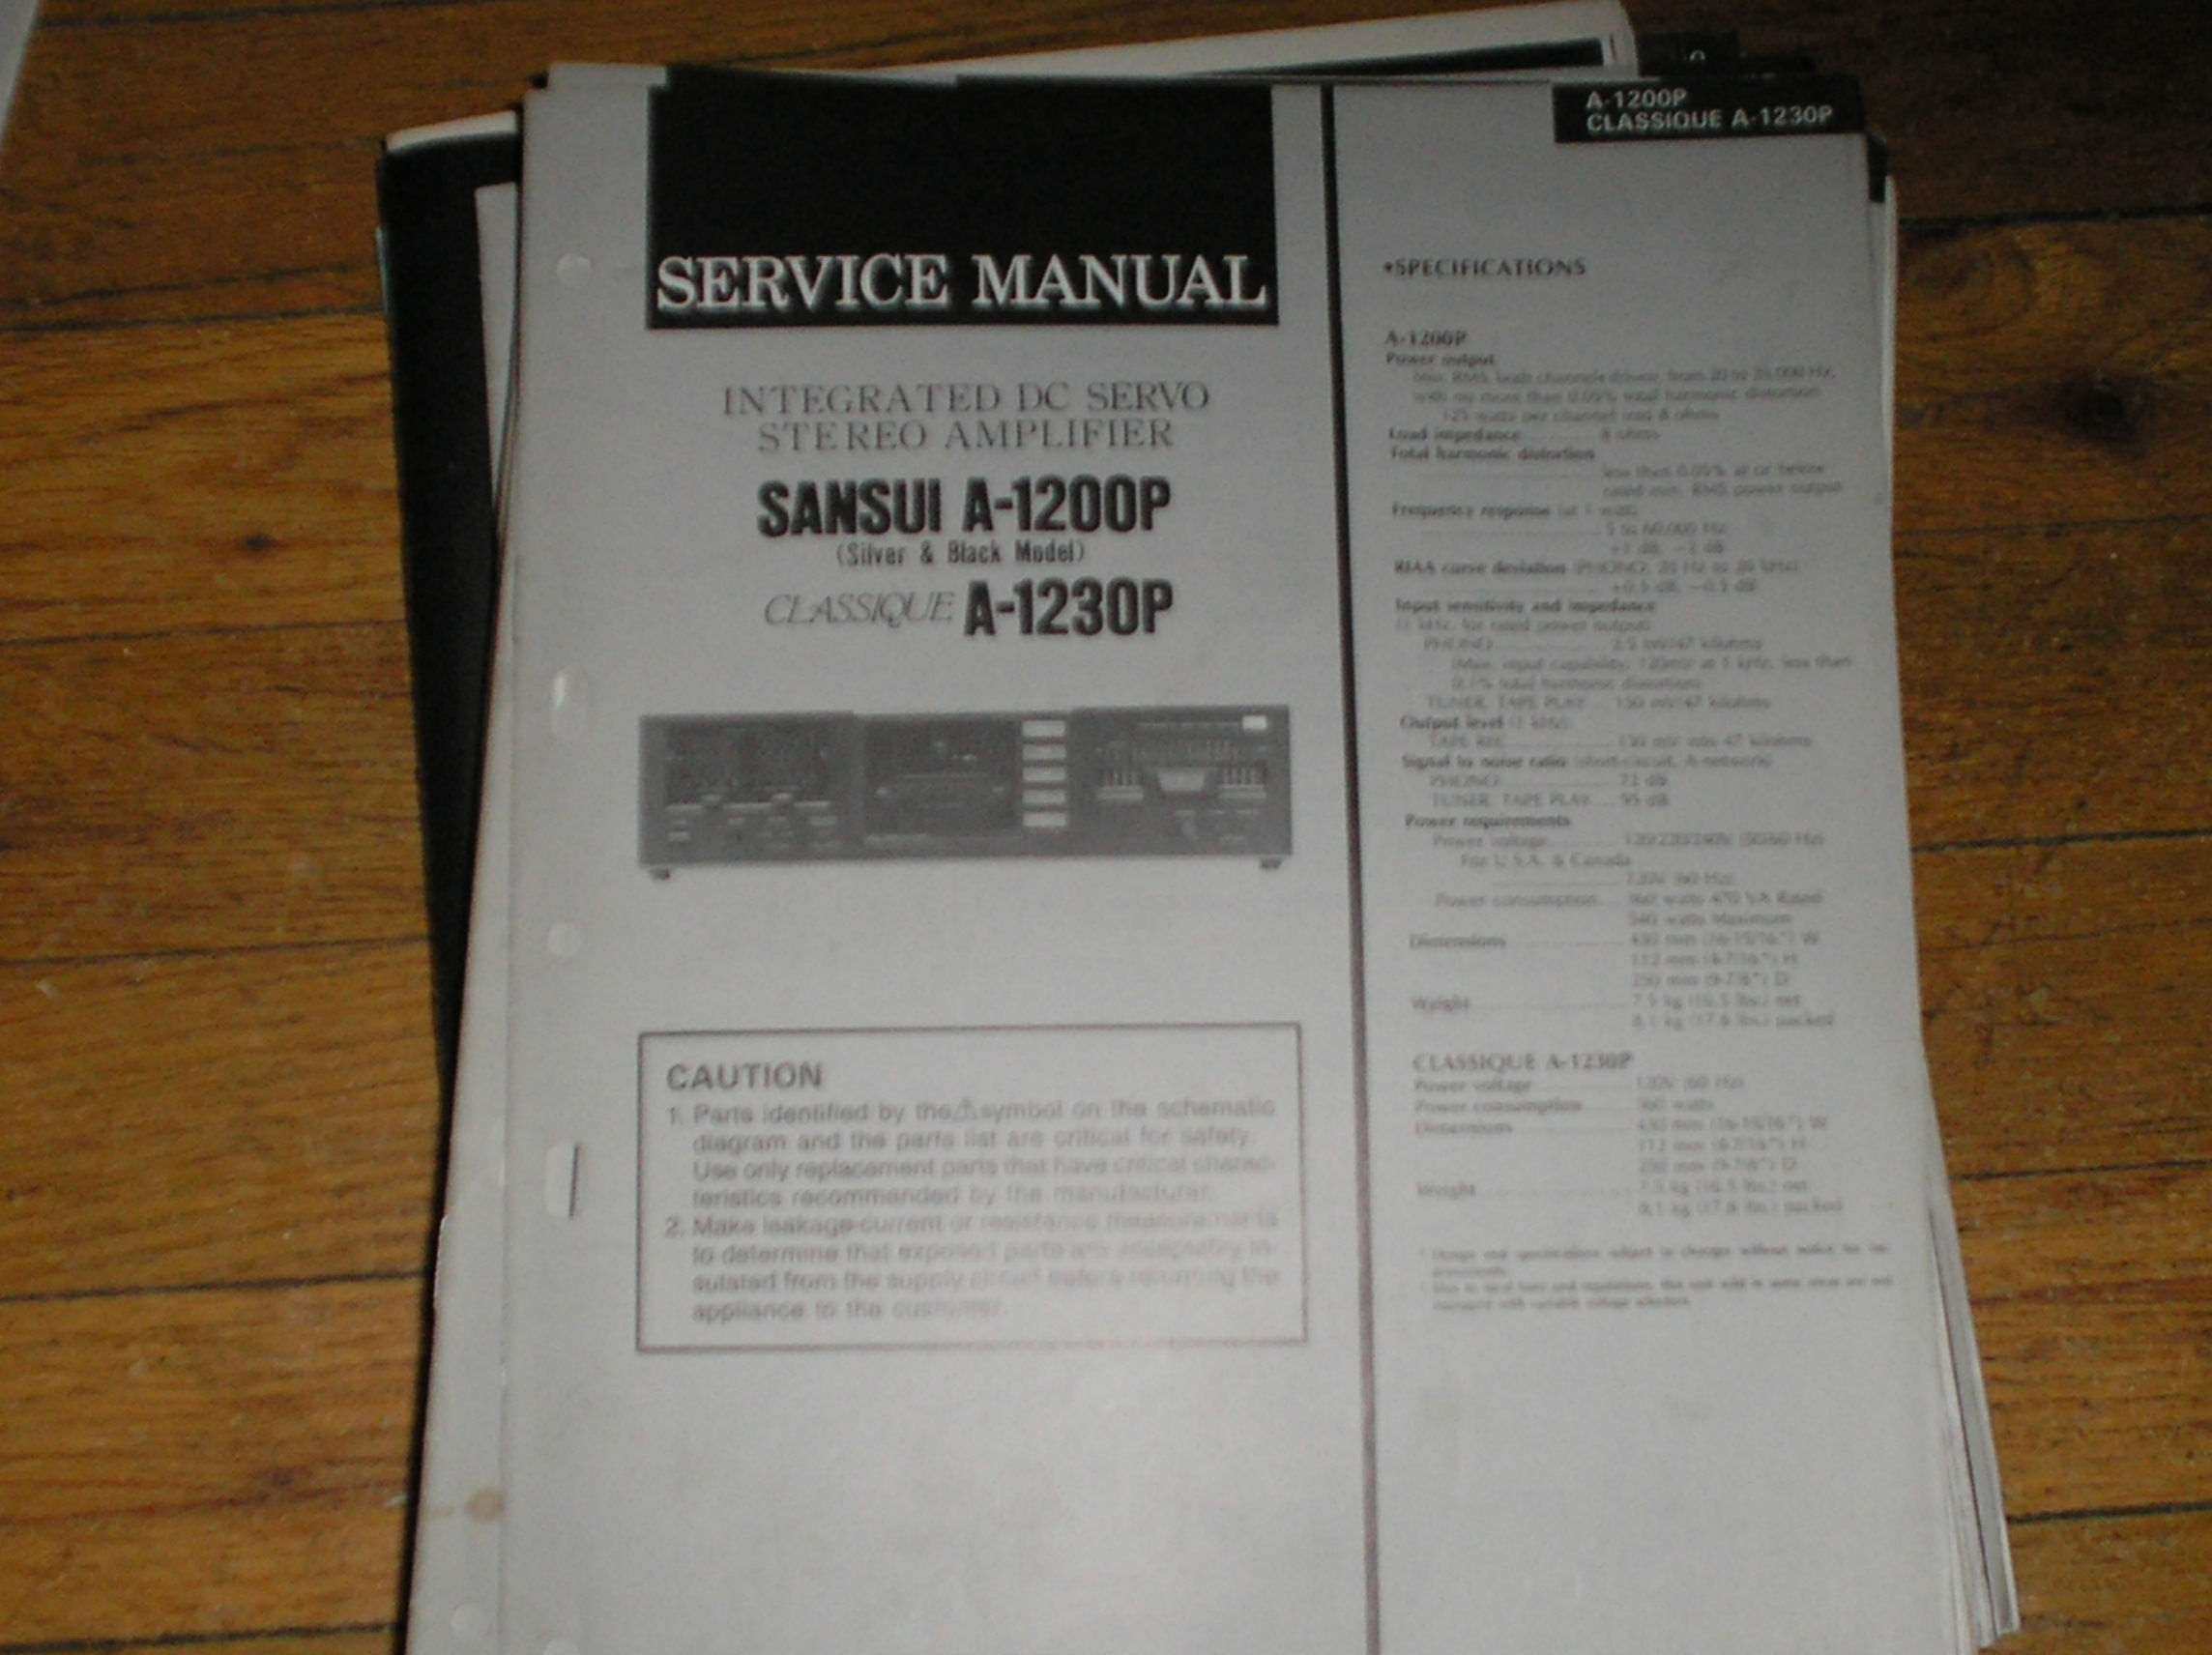 A-1200P A-1230P Amplifier Service Manual